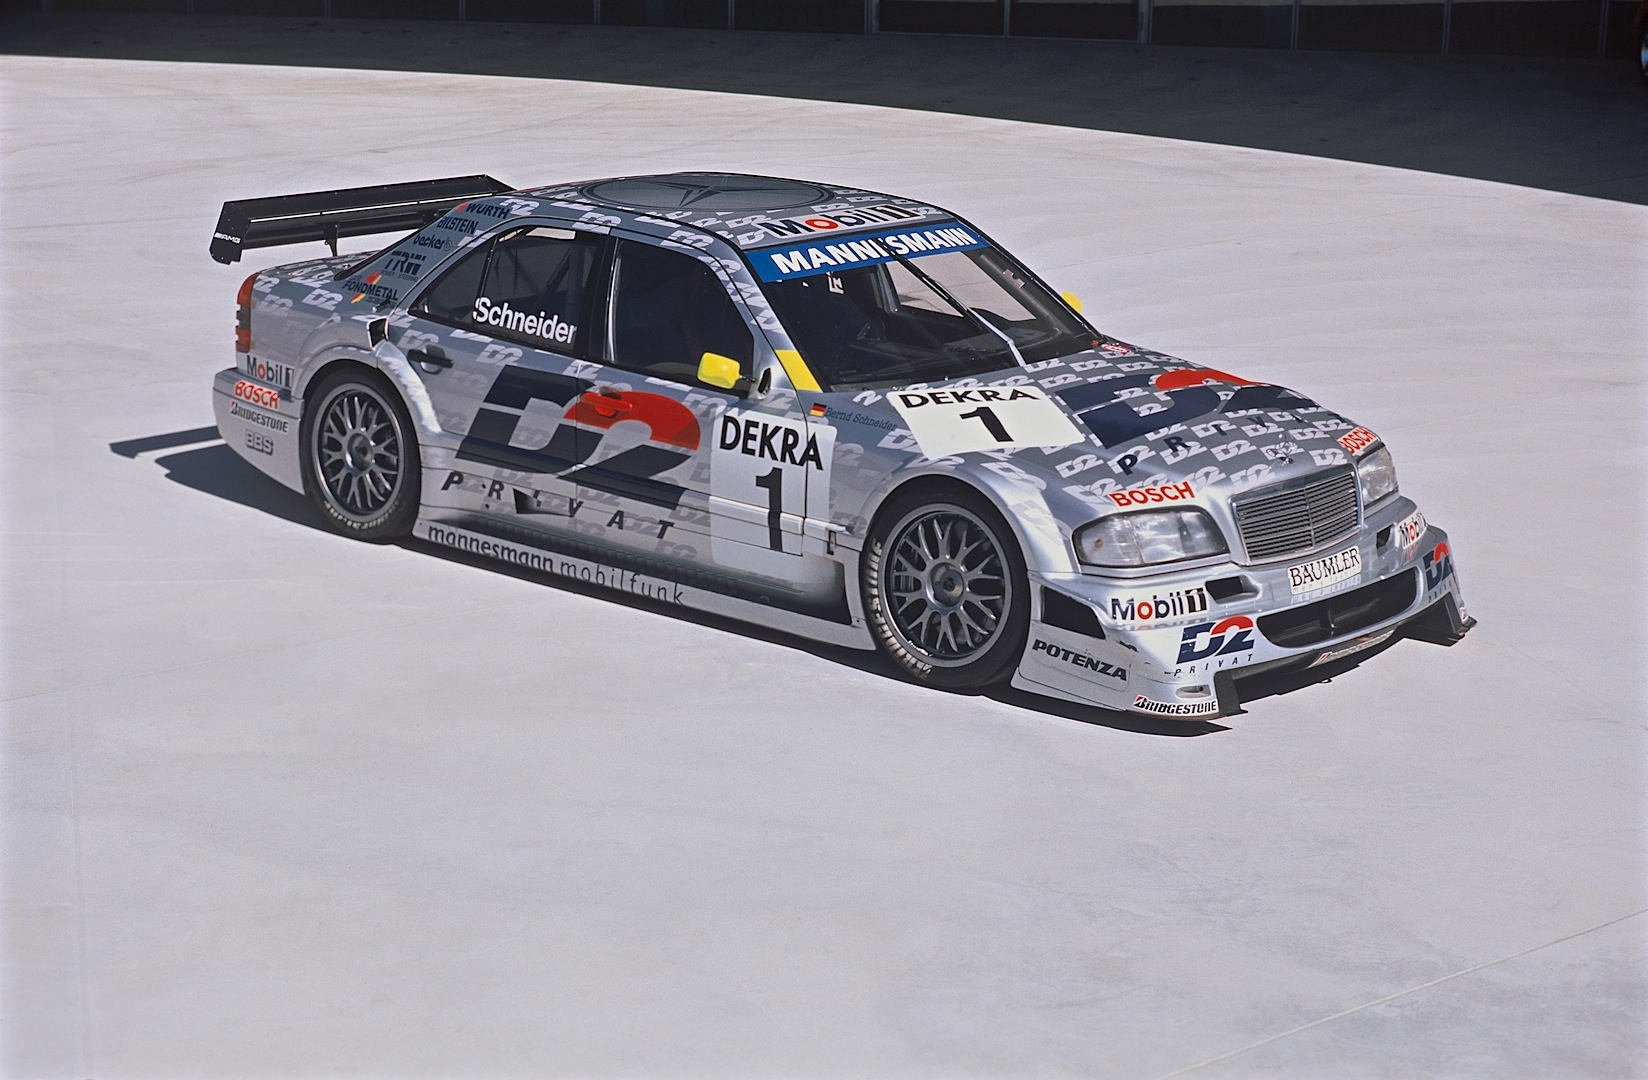 A short history of the mercedes benz c class in dtm for Mercedes benz c class w202